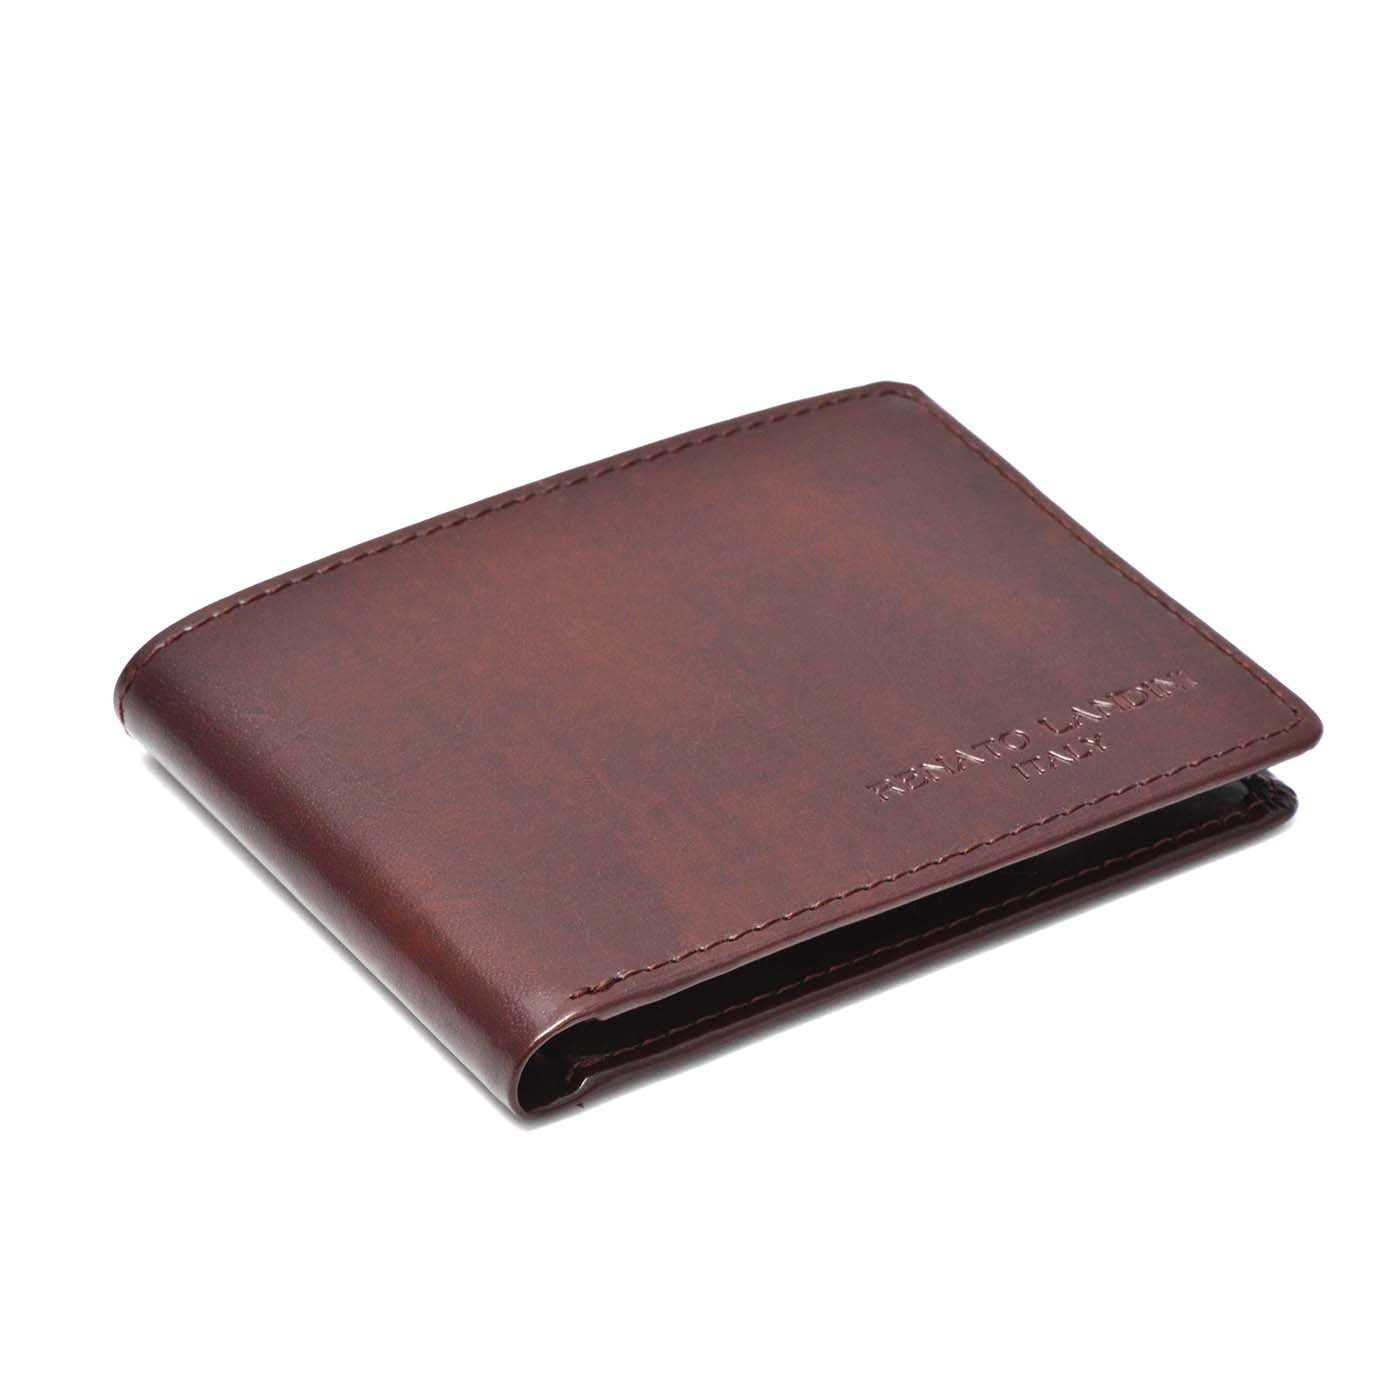 RENATO LANDINI Burgundy Men's Wallet/ Aristocrat